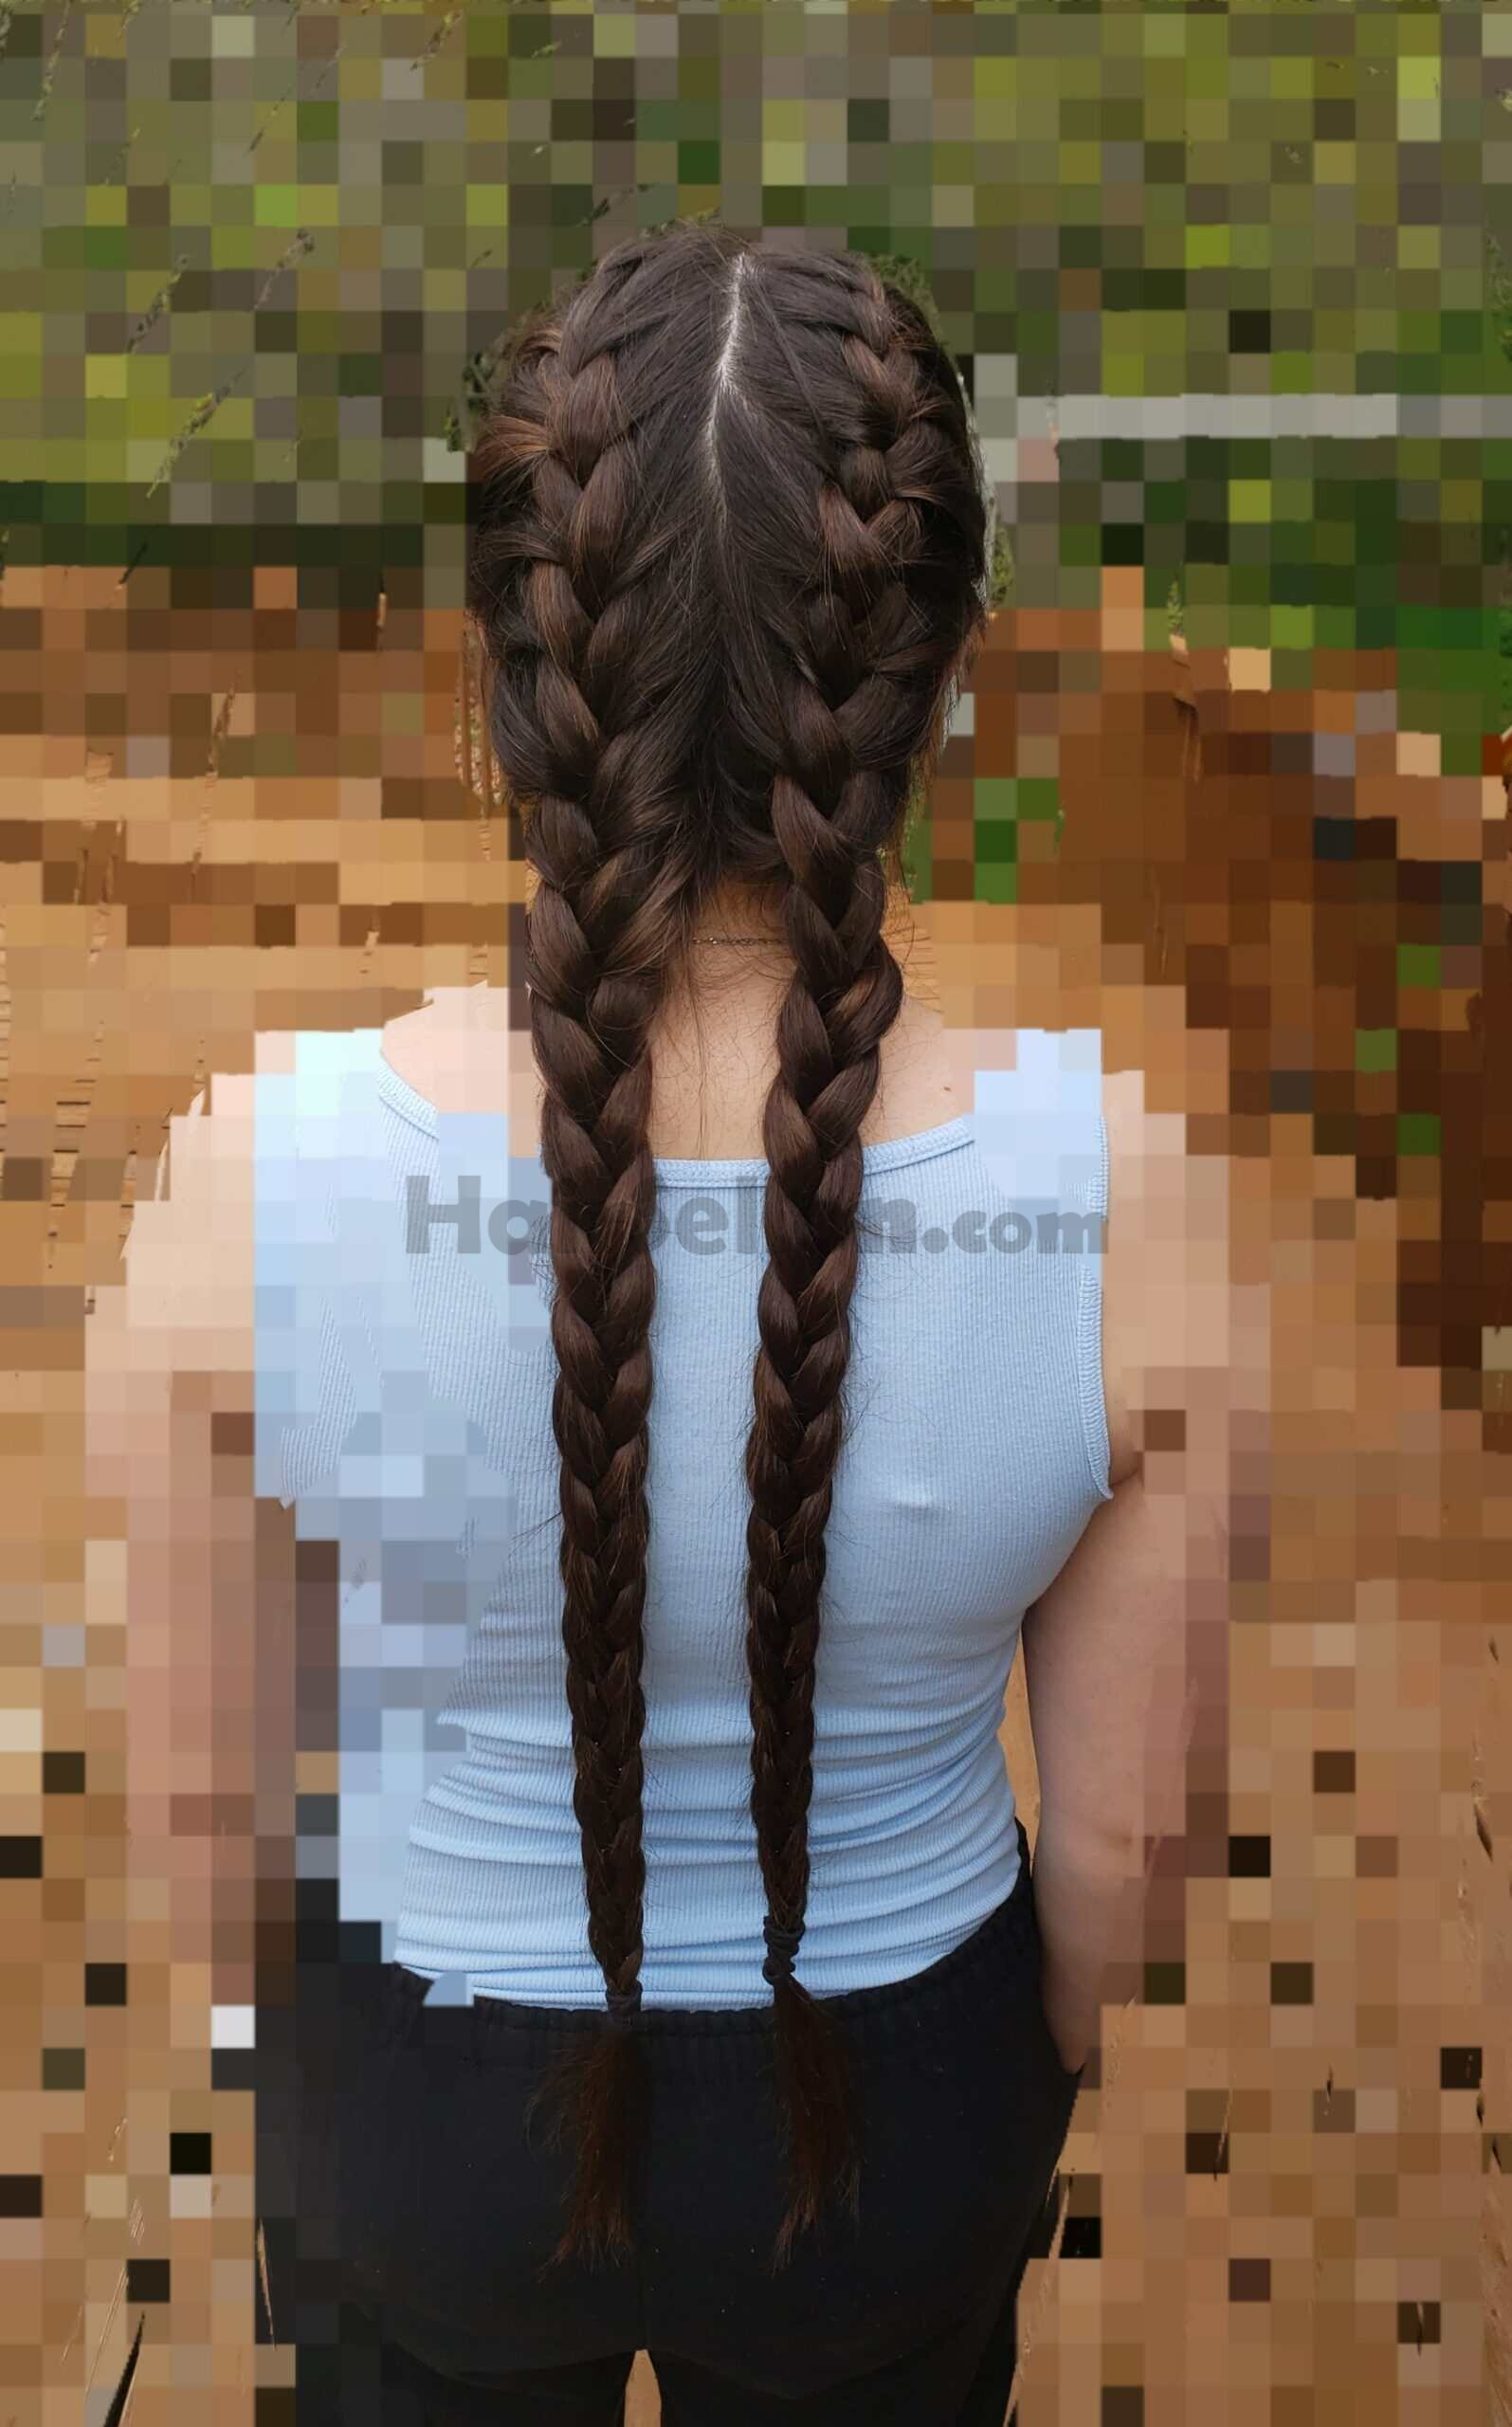 hair in braids-min